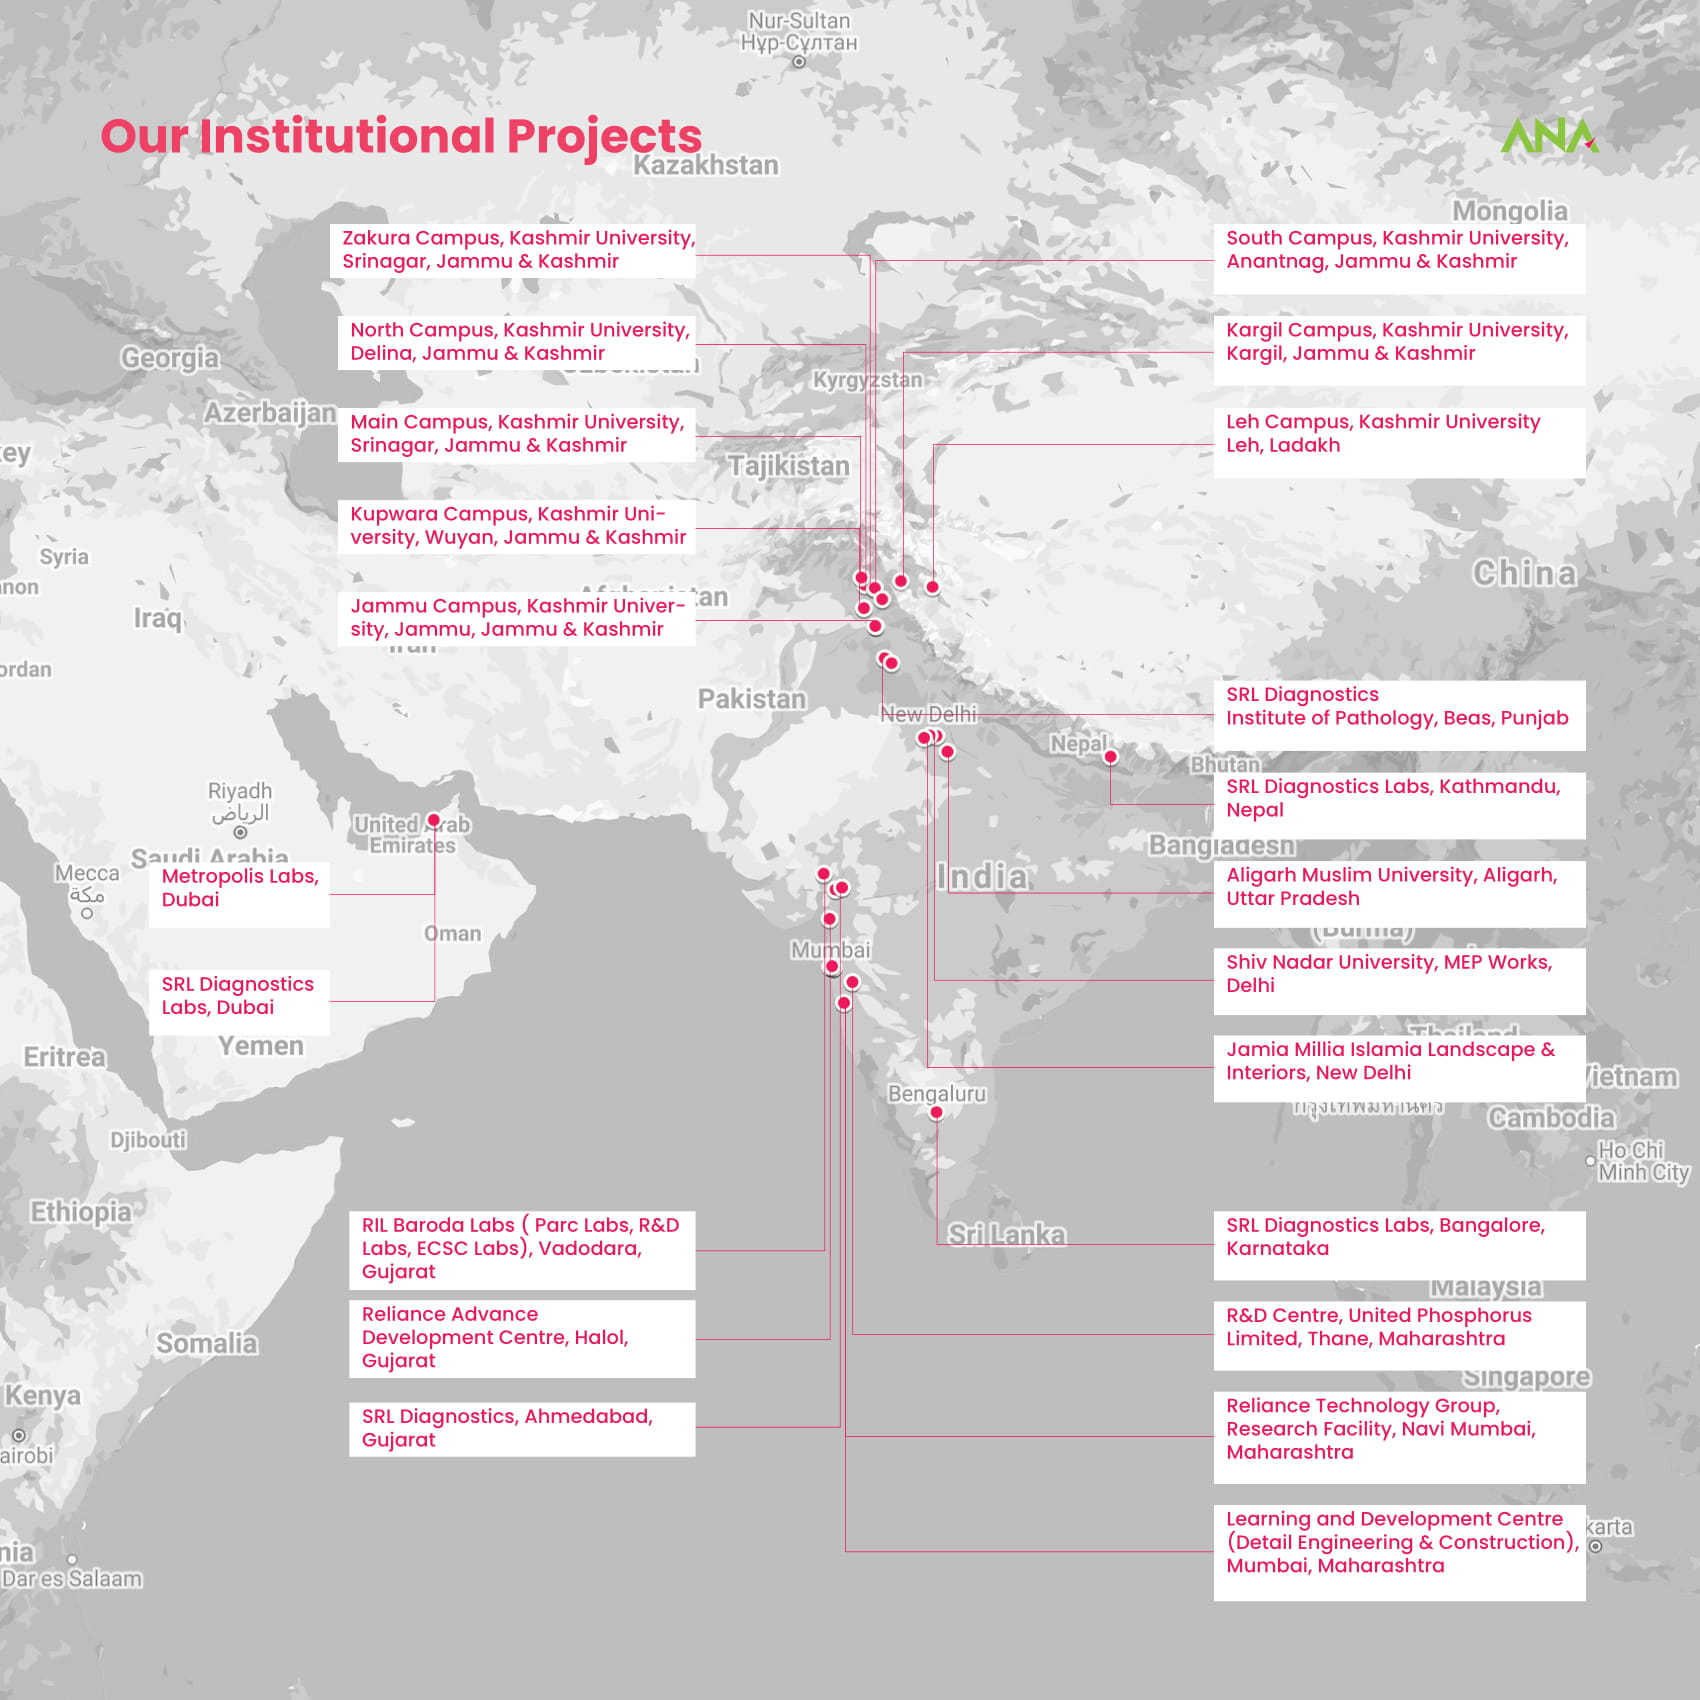 ANA Design Studio Institutional Projects